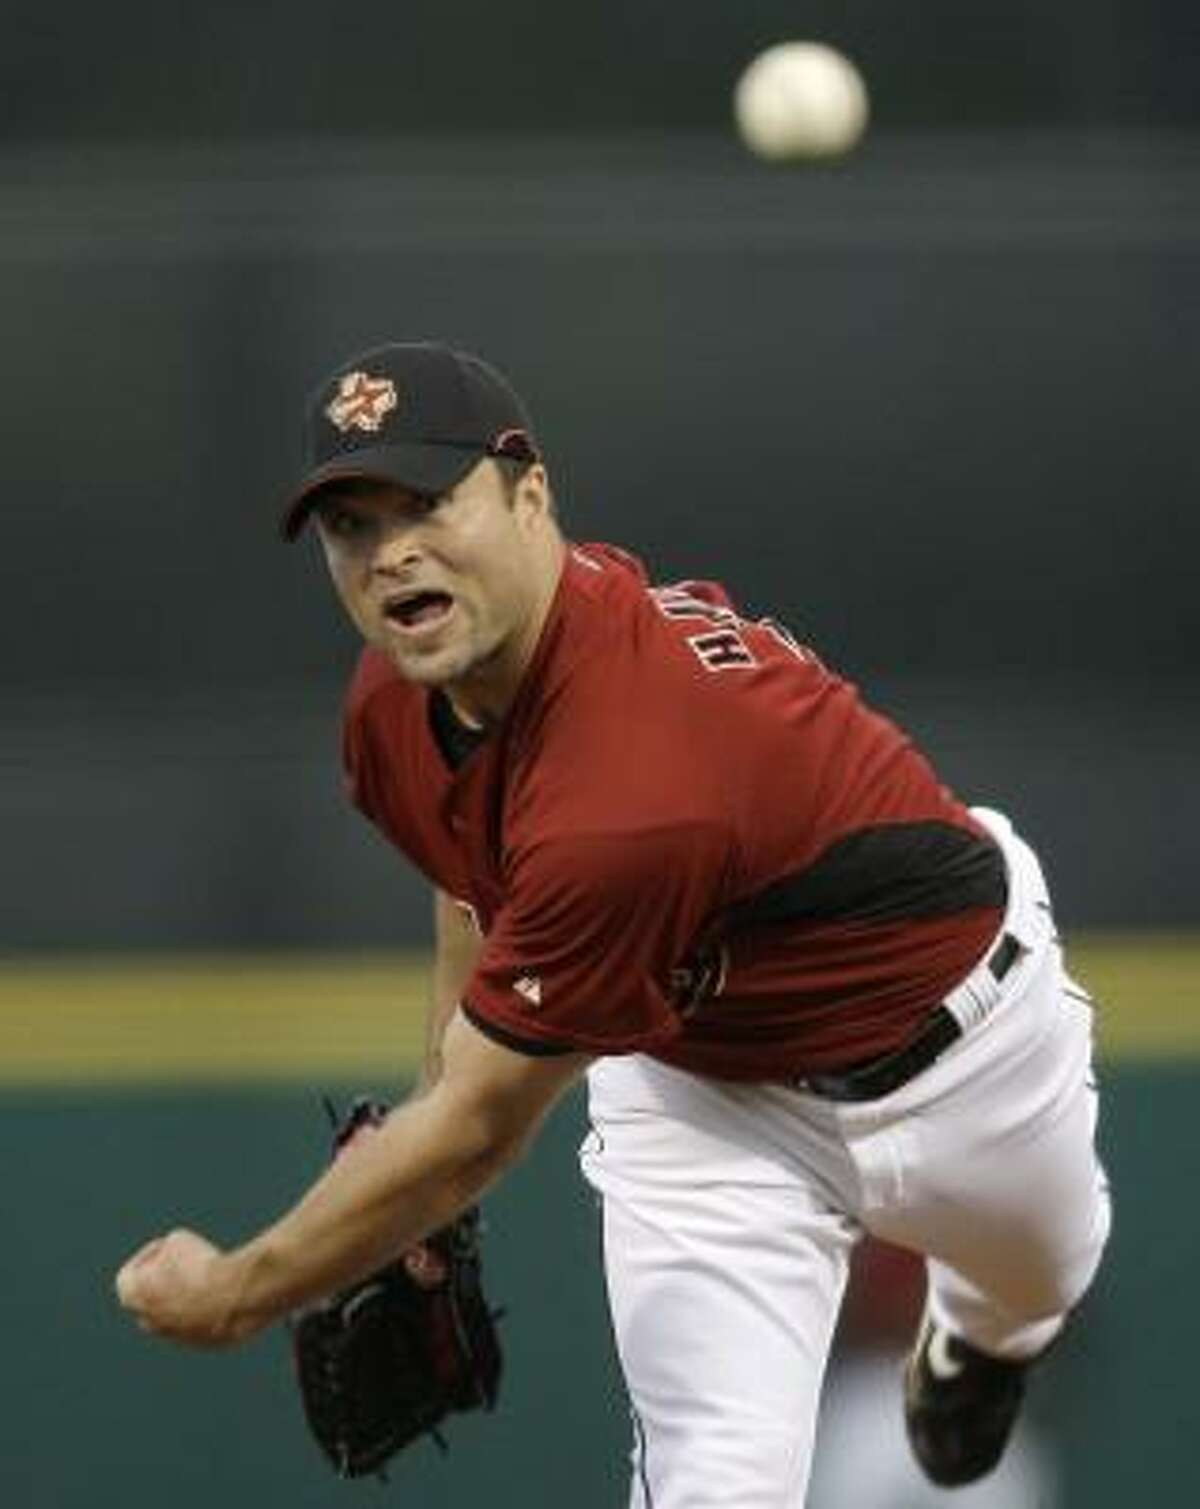 Astros pitcher Mike Hampton throws during the second inning.